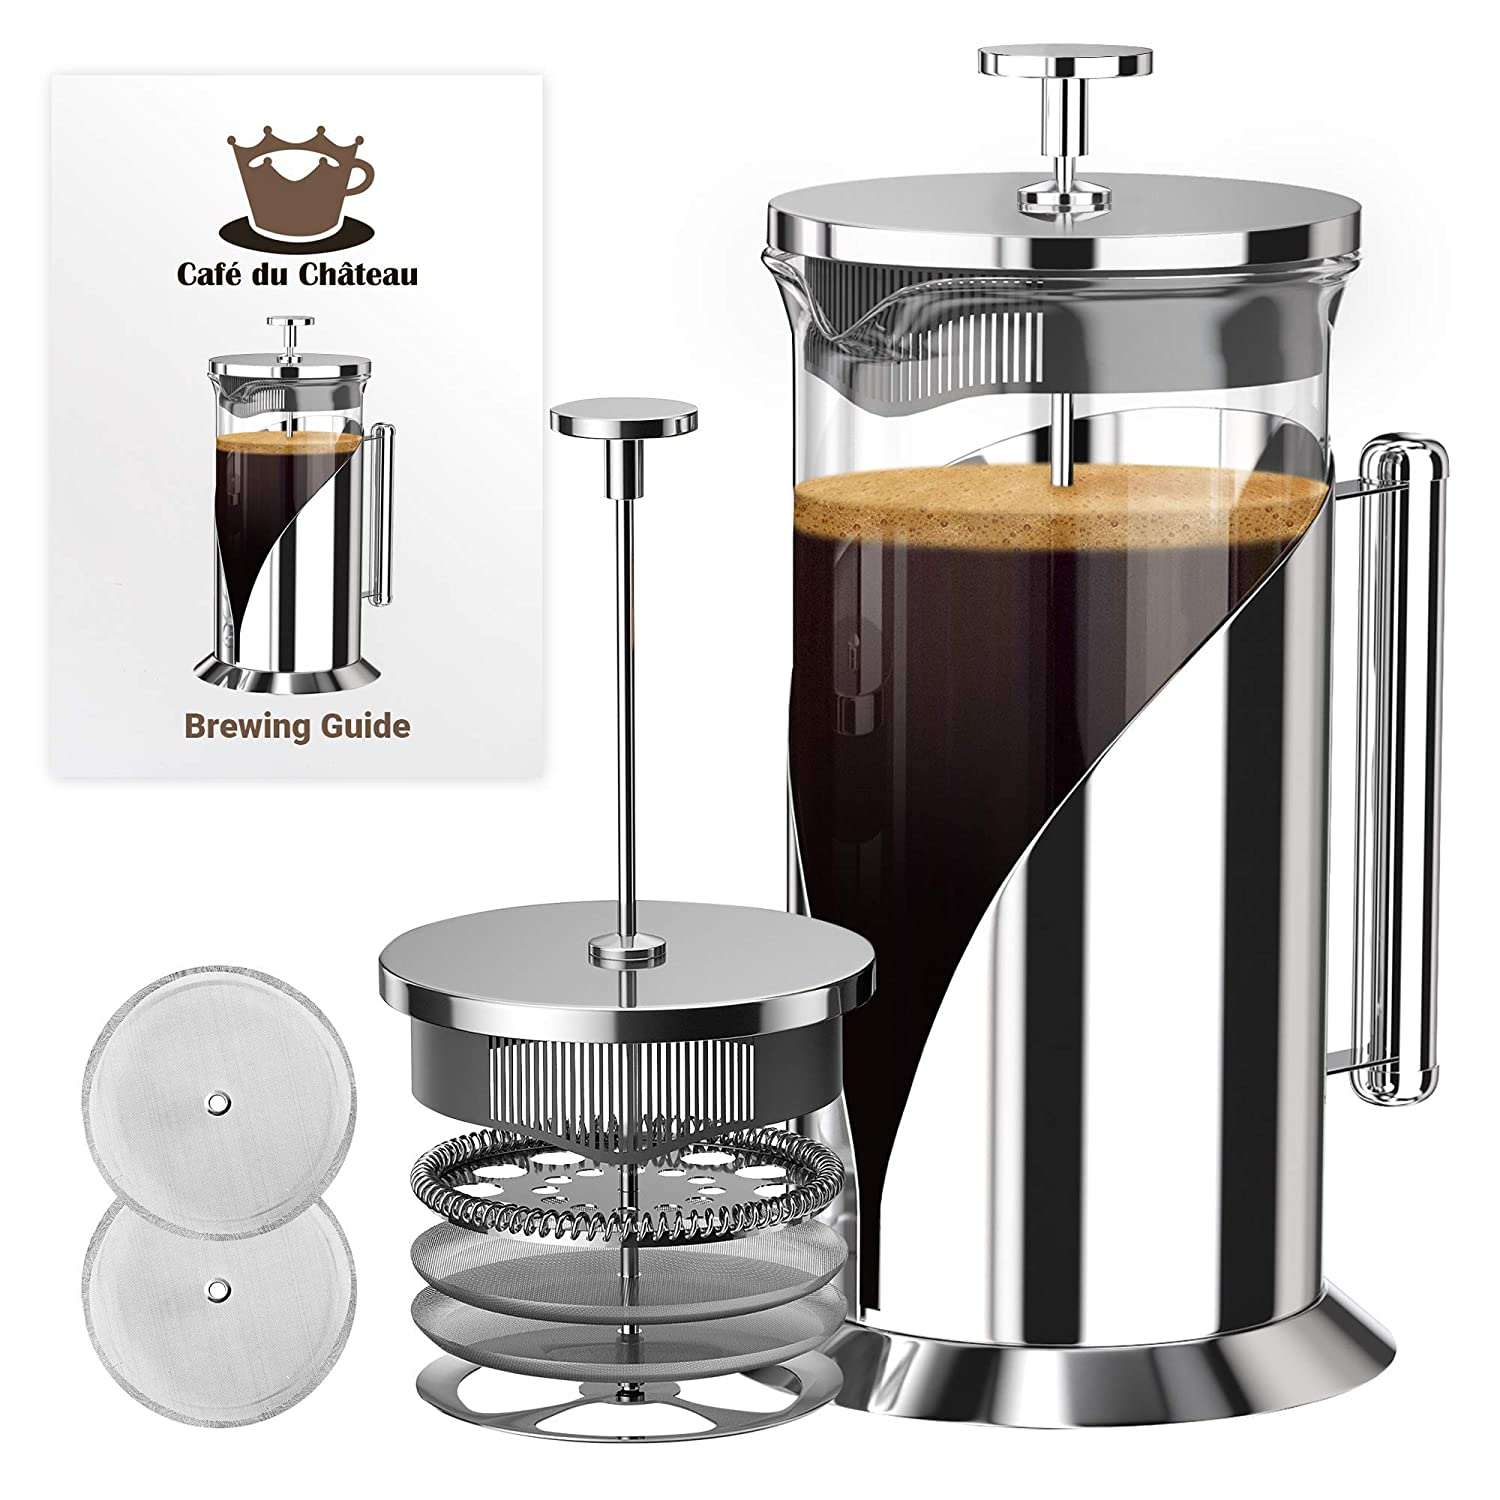 French Press Coffee Maker With 4 Level Filtration System by Cafe Du Chateau